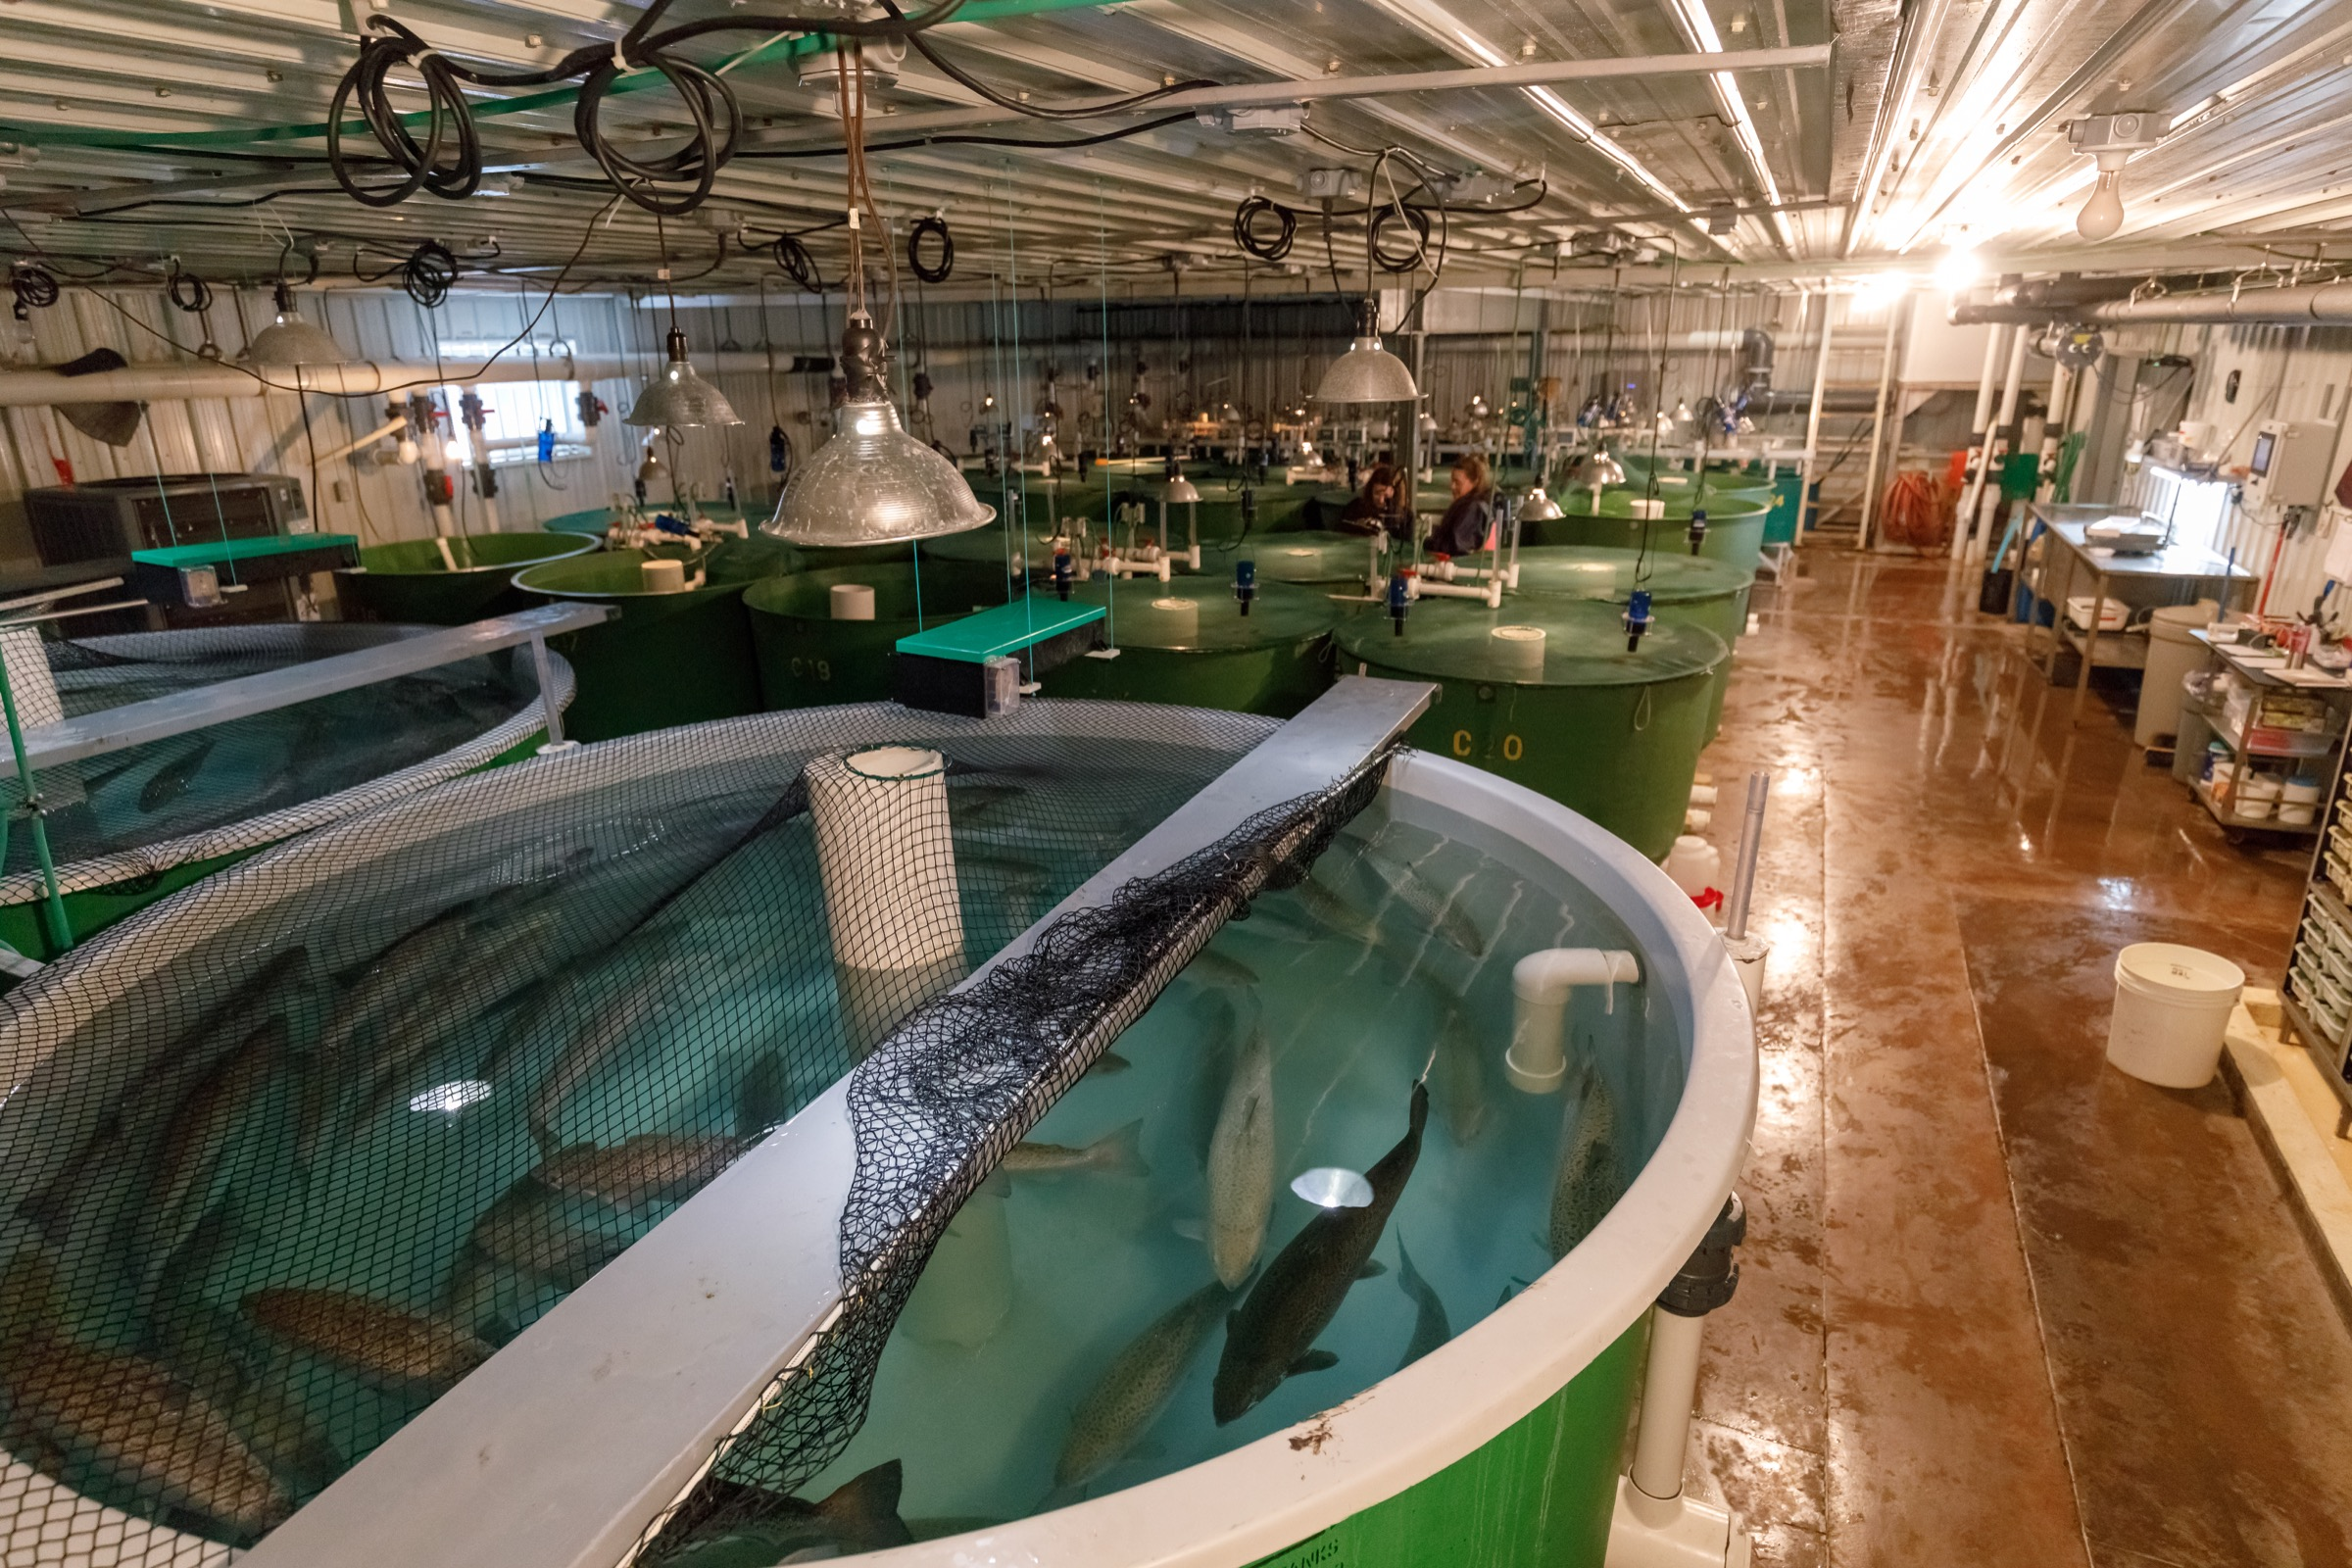 Market-sized, genetically modified salmon patrol the indoor tanks inside AquaBounty's Prince Edward Island facility. Photograph by Stephen DesRoches